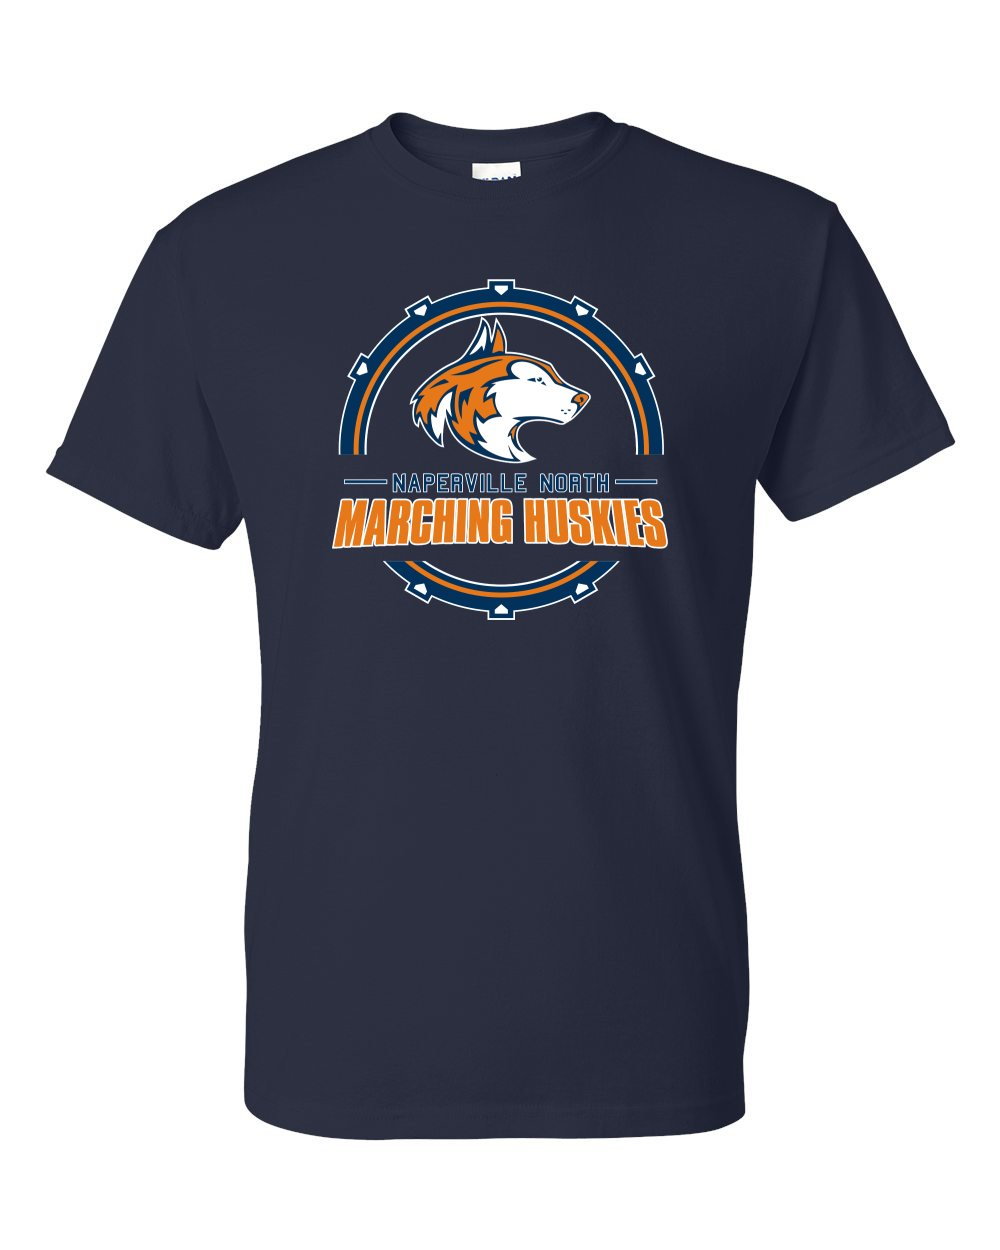 NNHS Marching Band Short-Sleeve T-Shirt